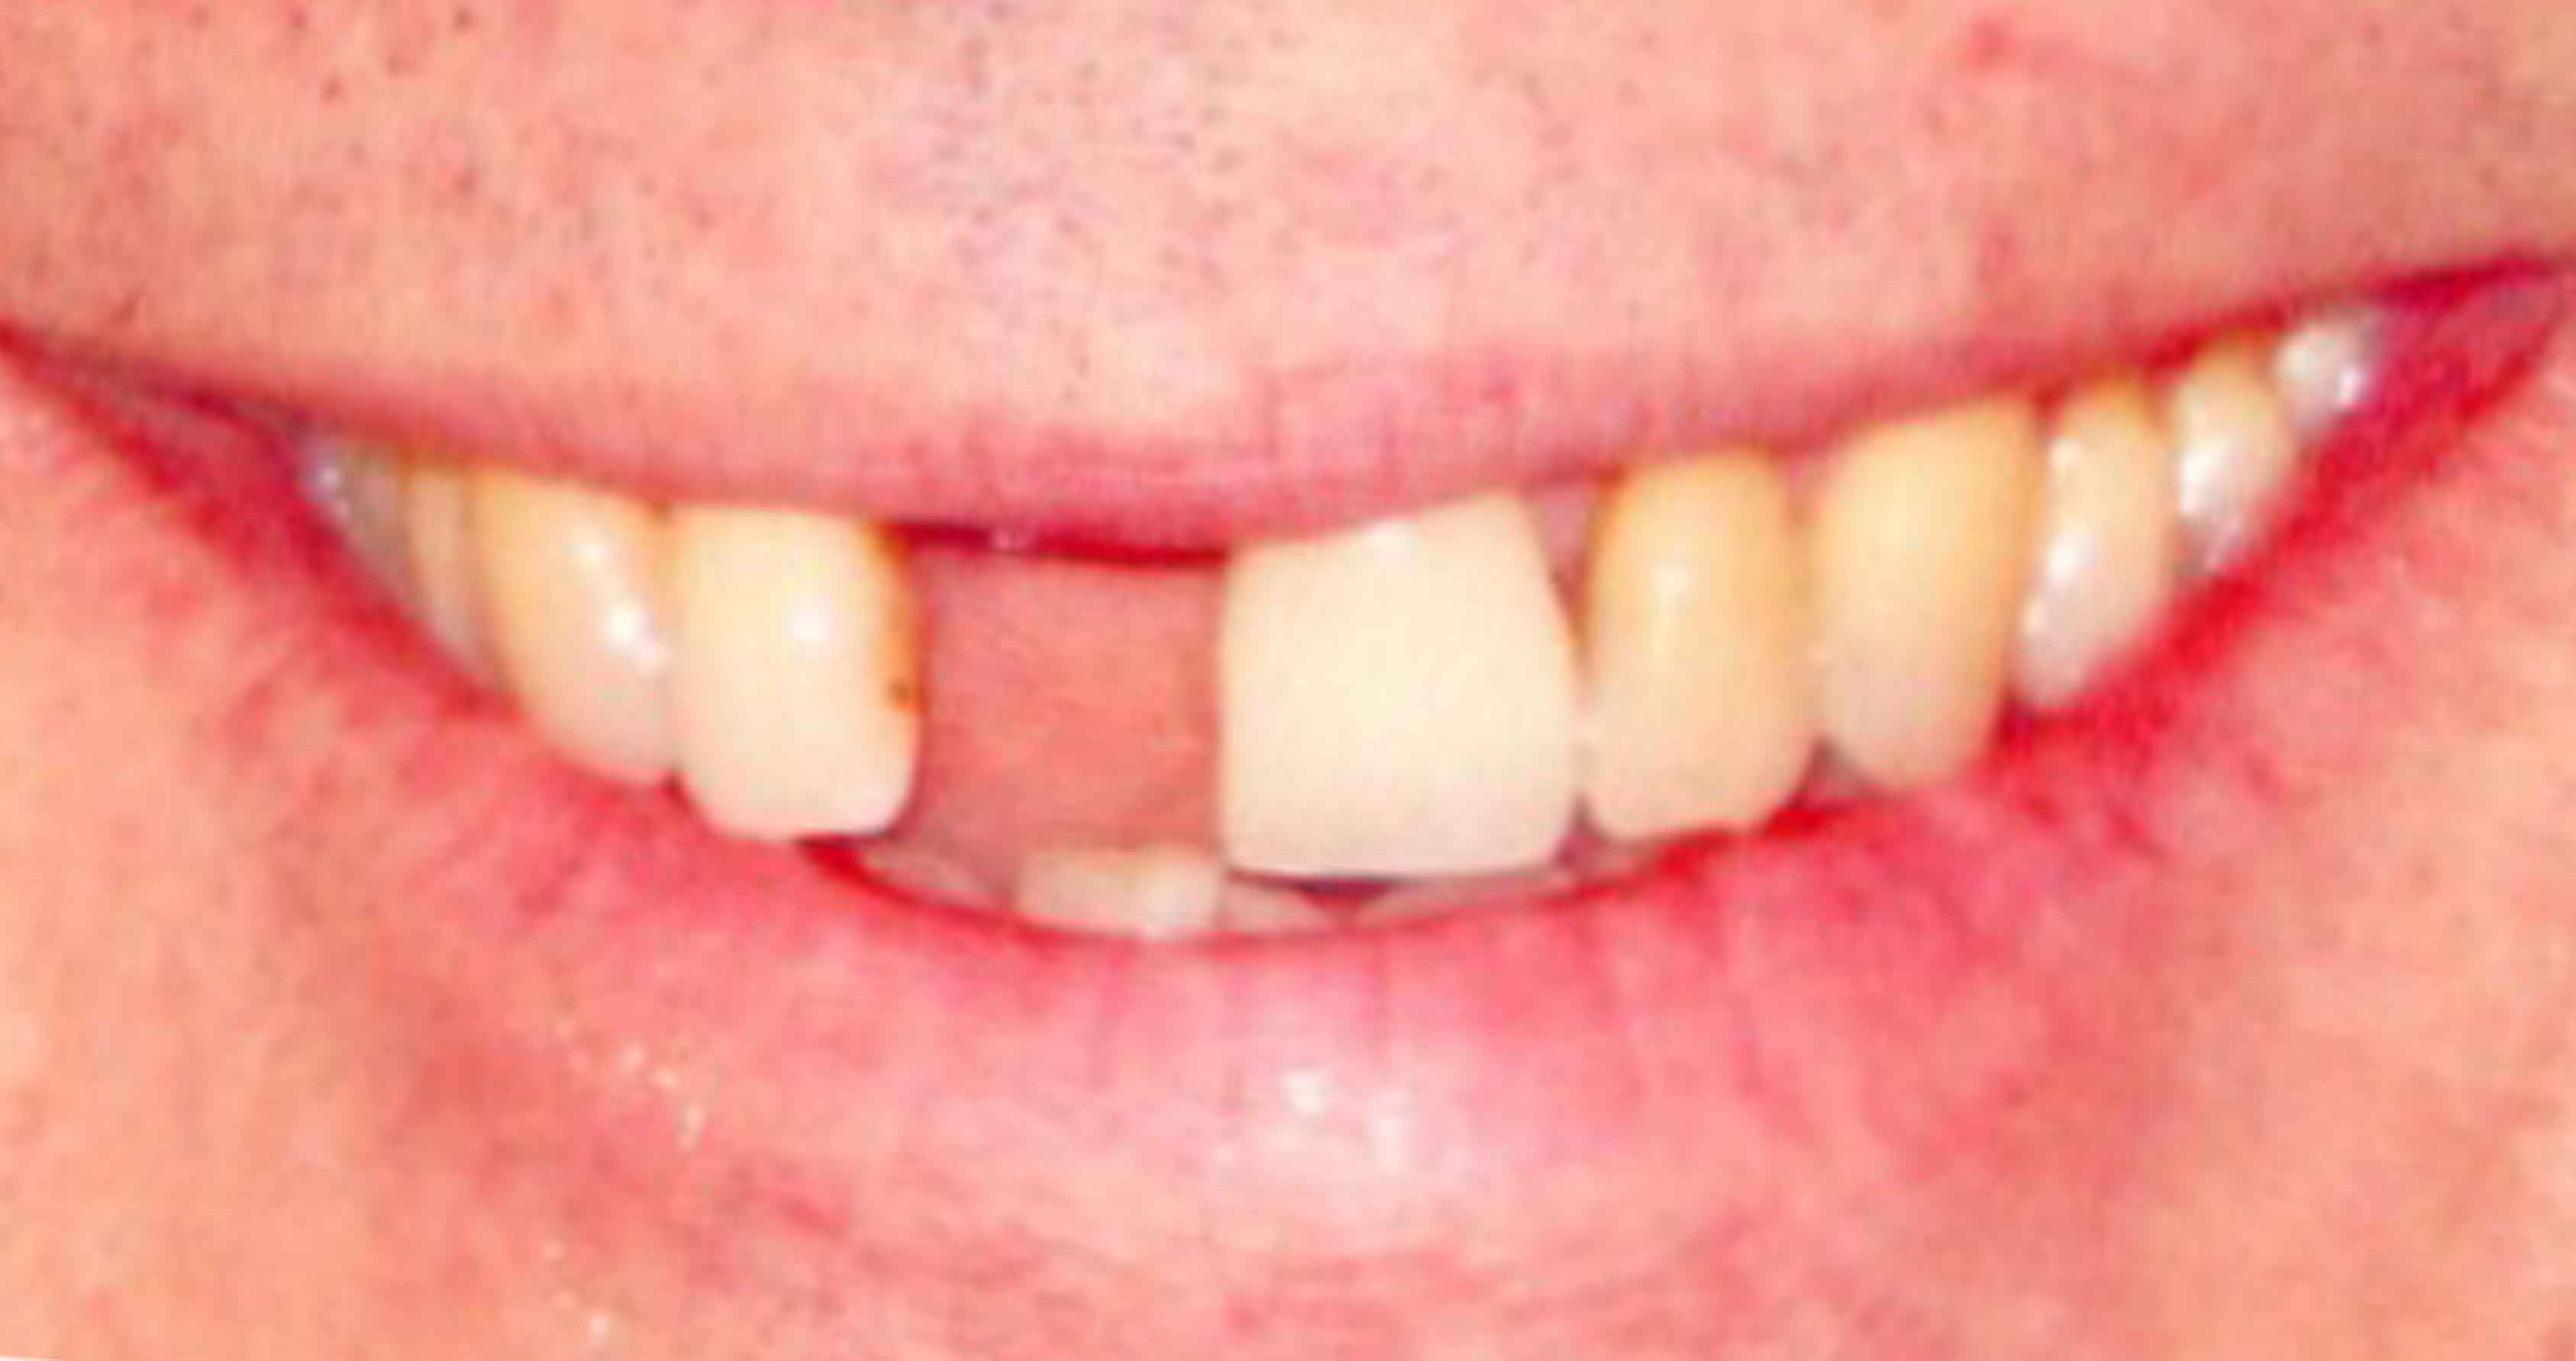 Cosmetic Dentistry San Rafael before and after procedure